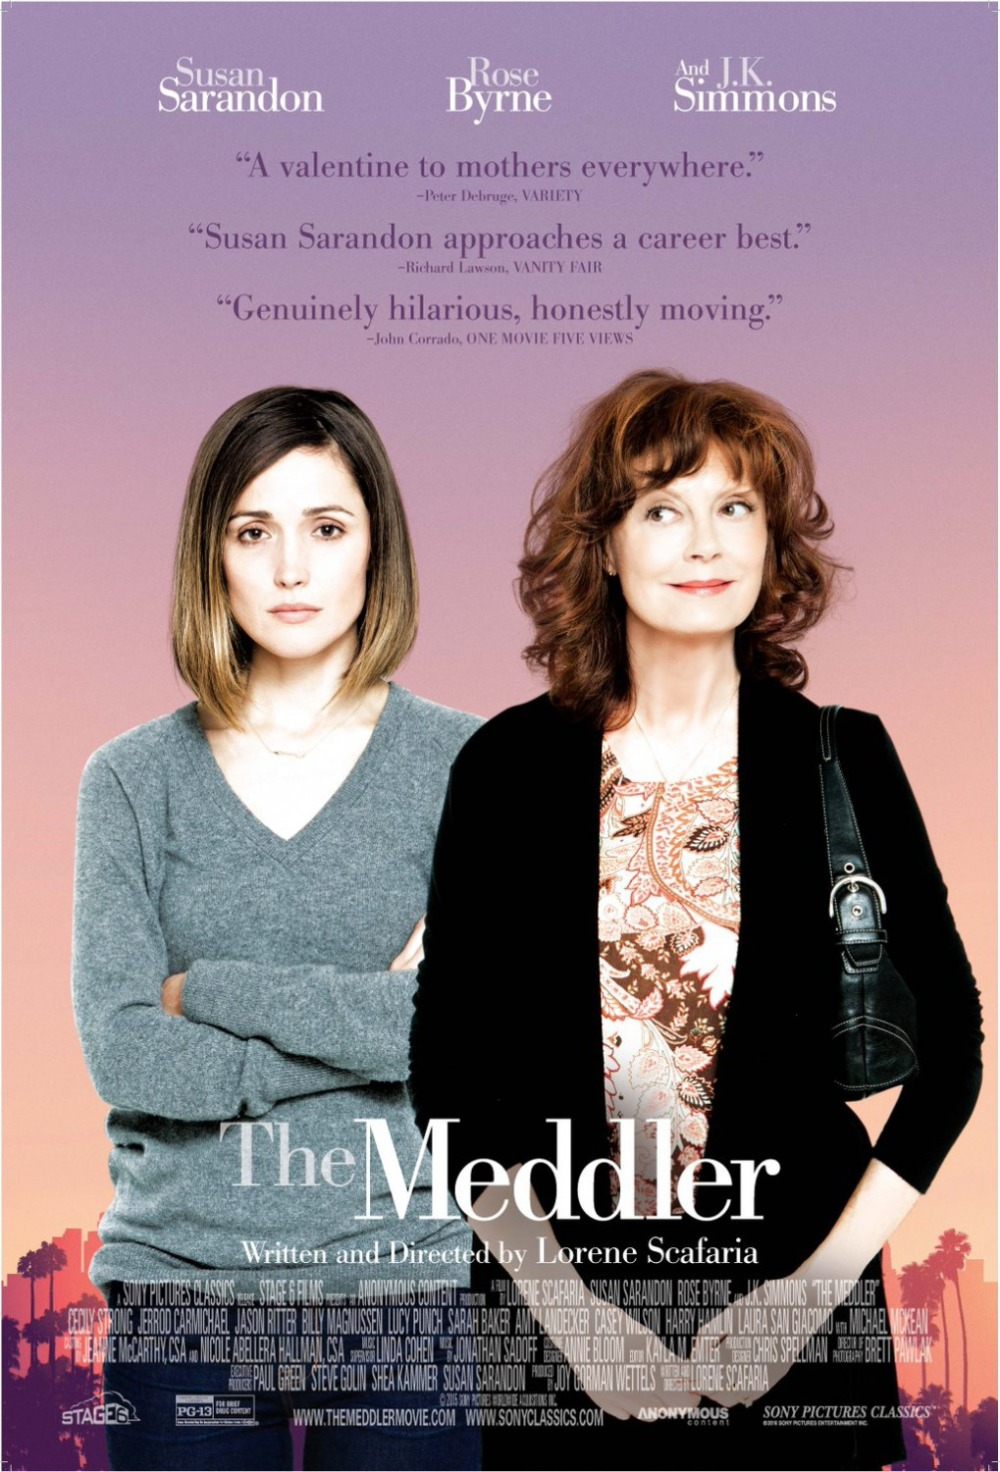 the-meddler-movie-poster